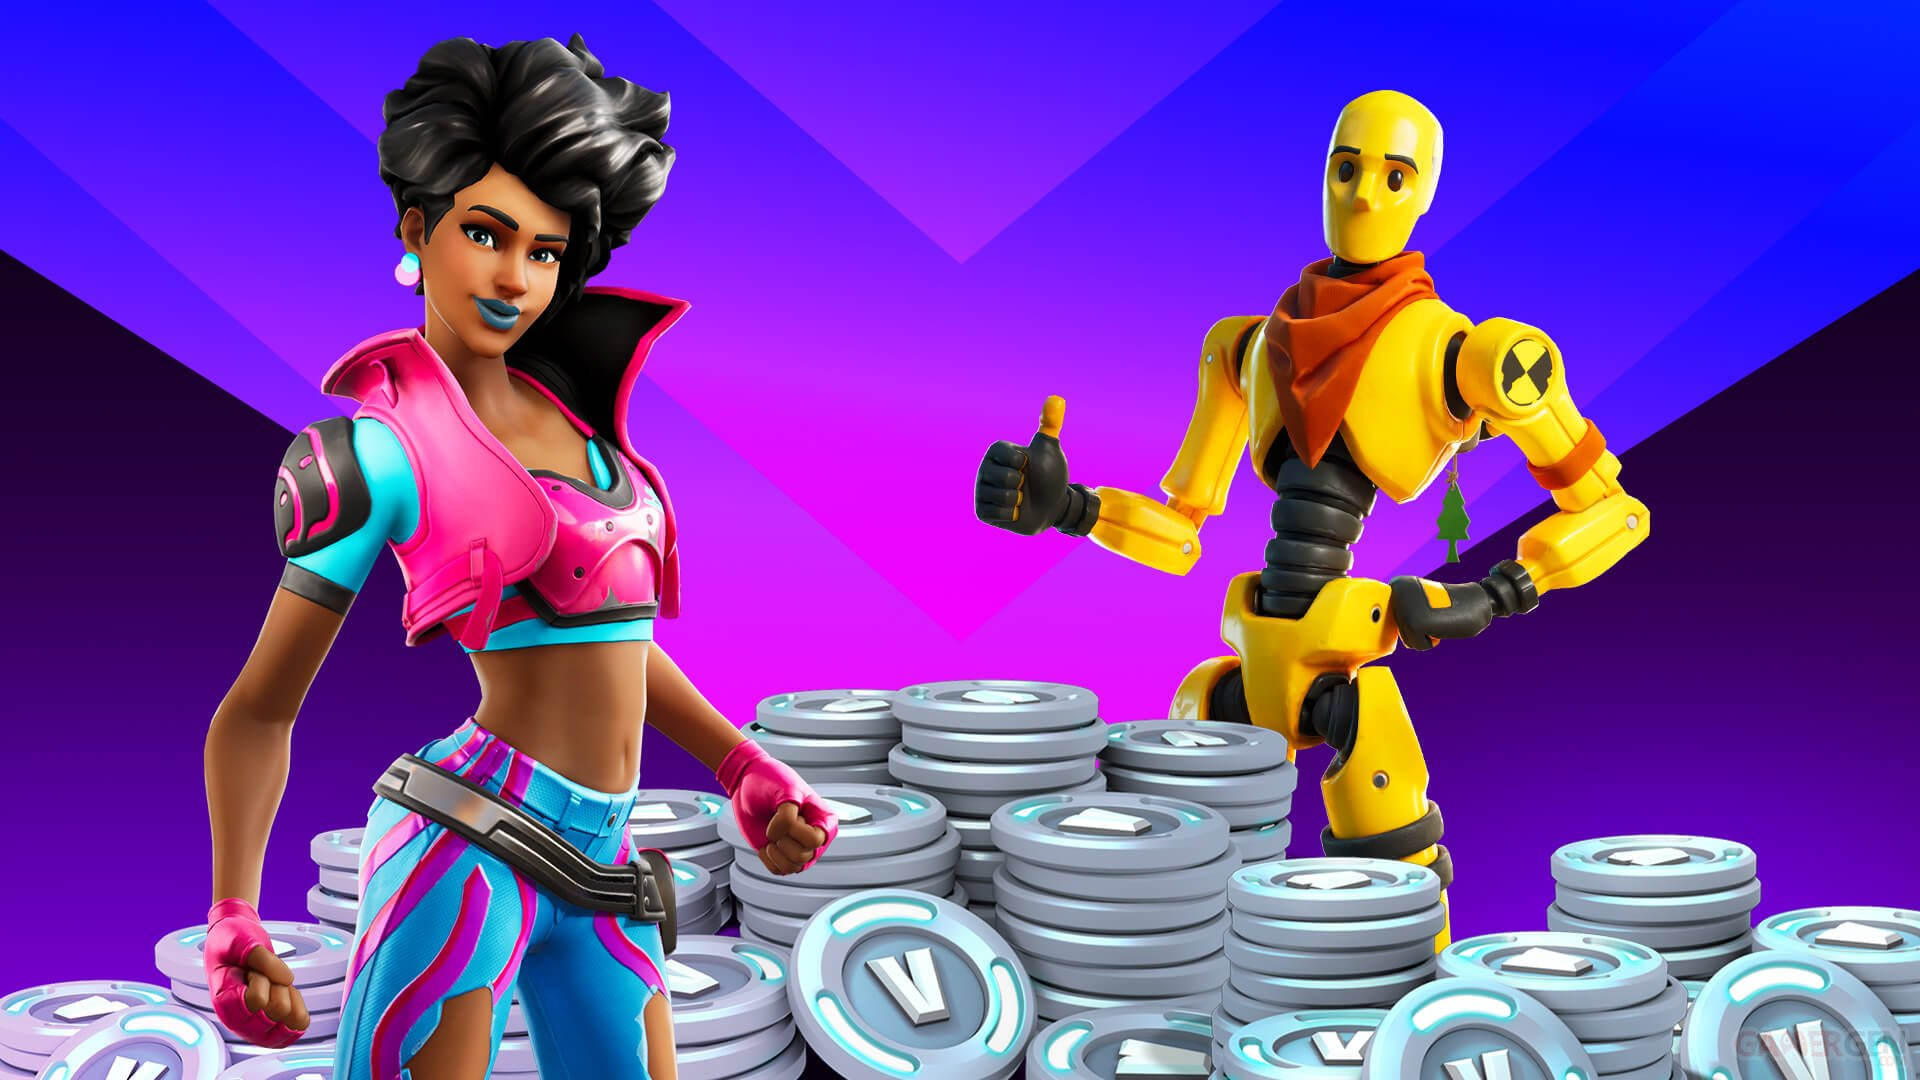 Bataille royale entre Fortnite et les géants Apple et Google